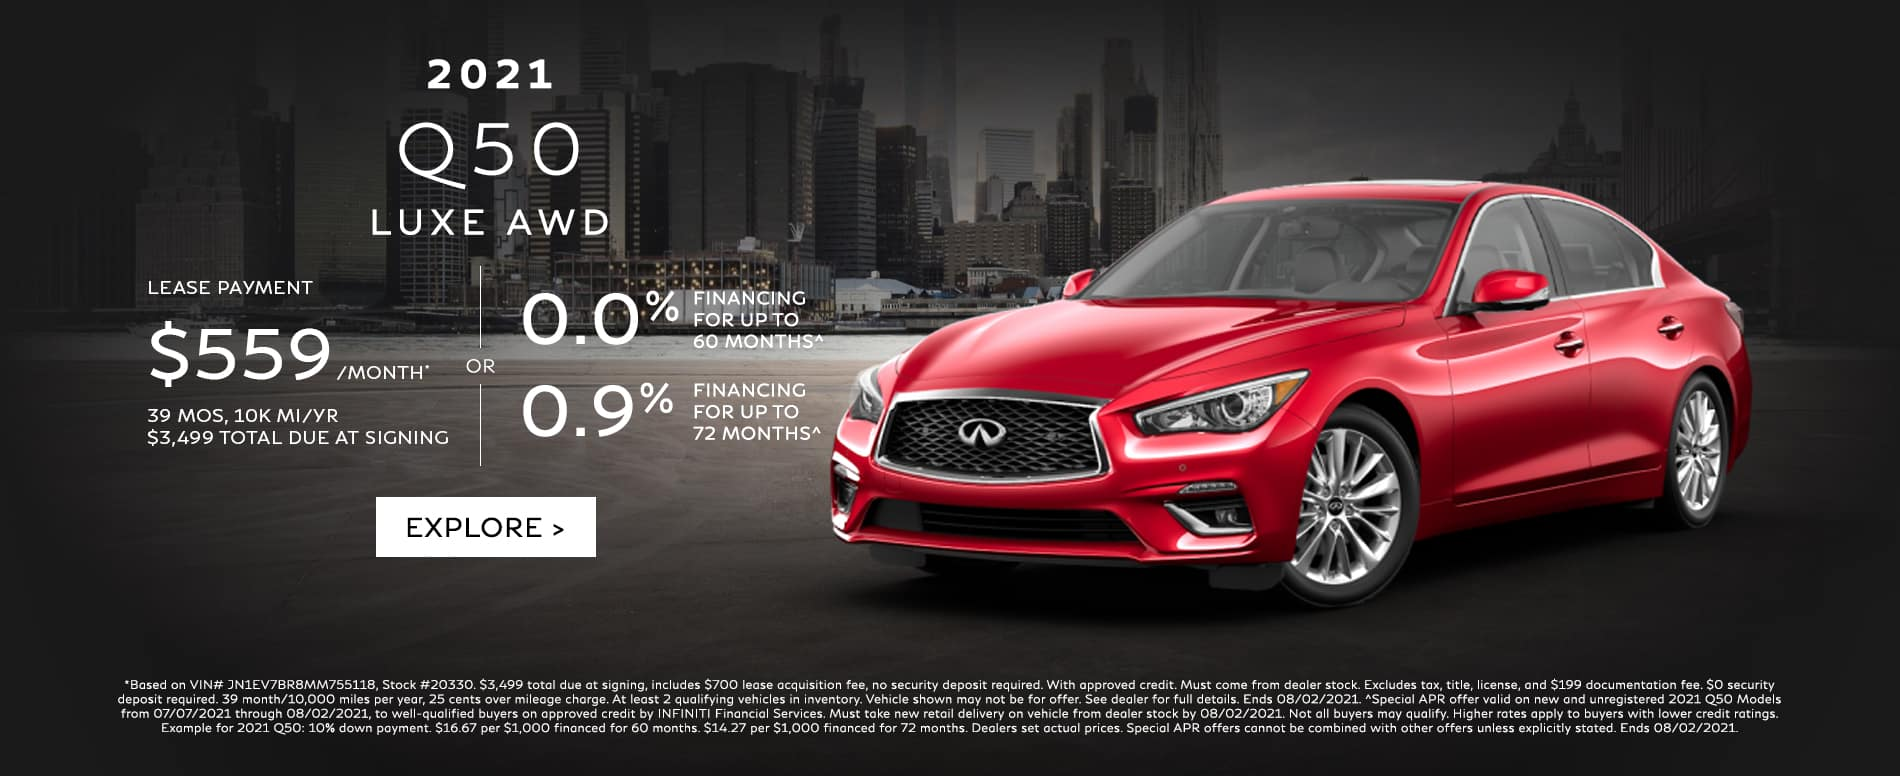 Lease a new Q50 for $559/mo. See dealer for details.